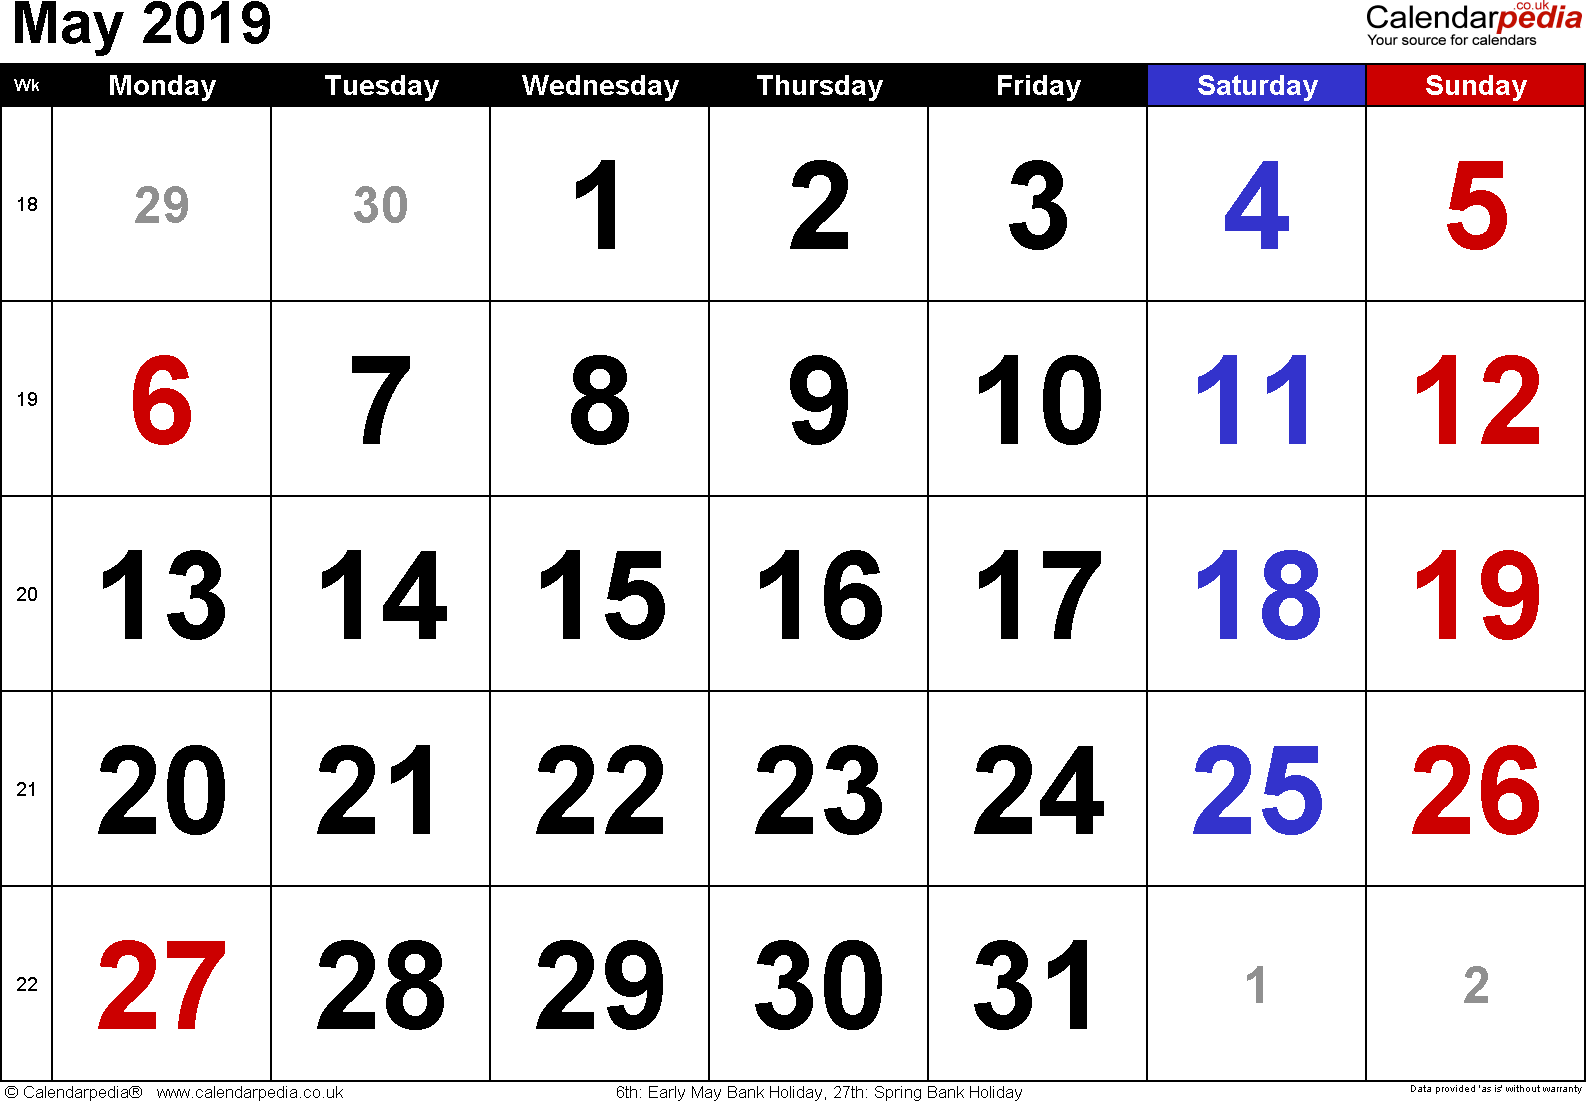 Calendar May 2019, landscape orientation, large numerals, 1 page, with UK bank holidays and week numbers